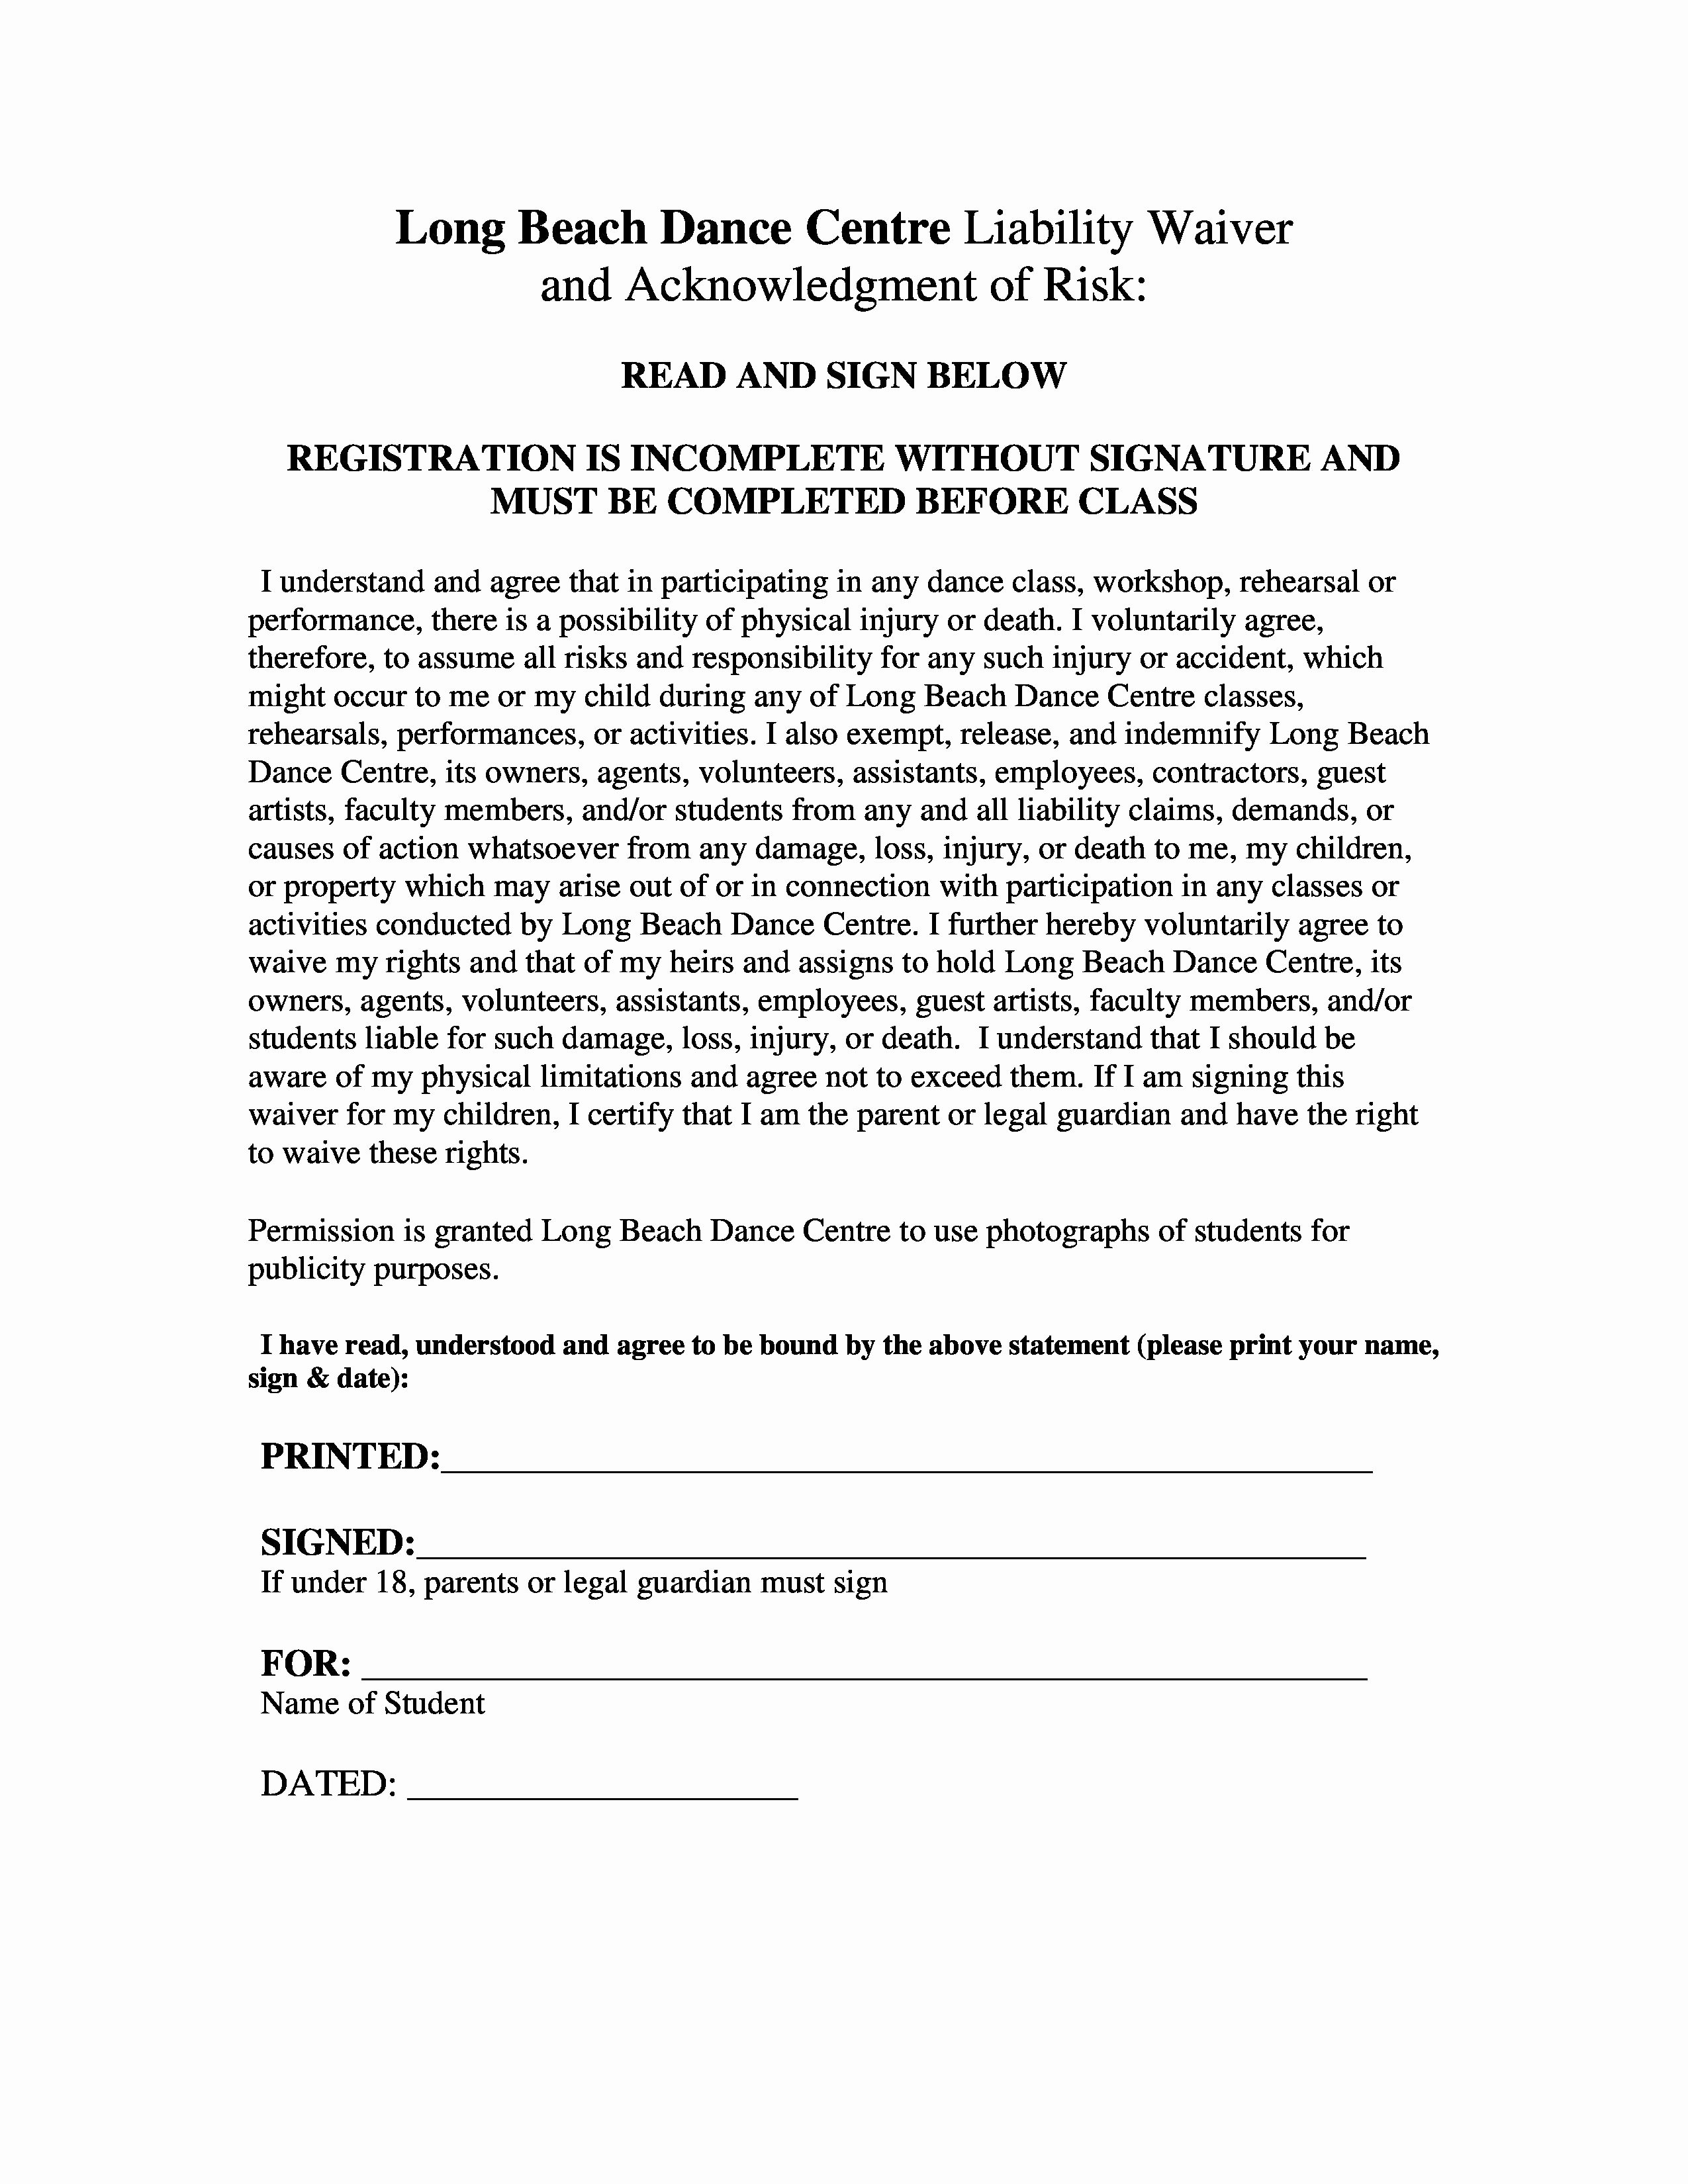 Liability Waiver form Template Free New Liability Waiver Release Printables